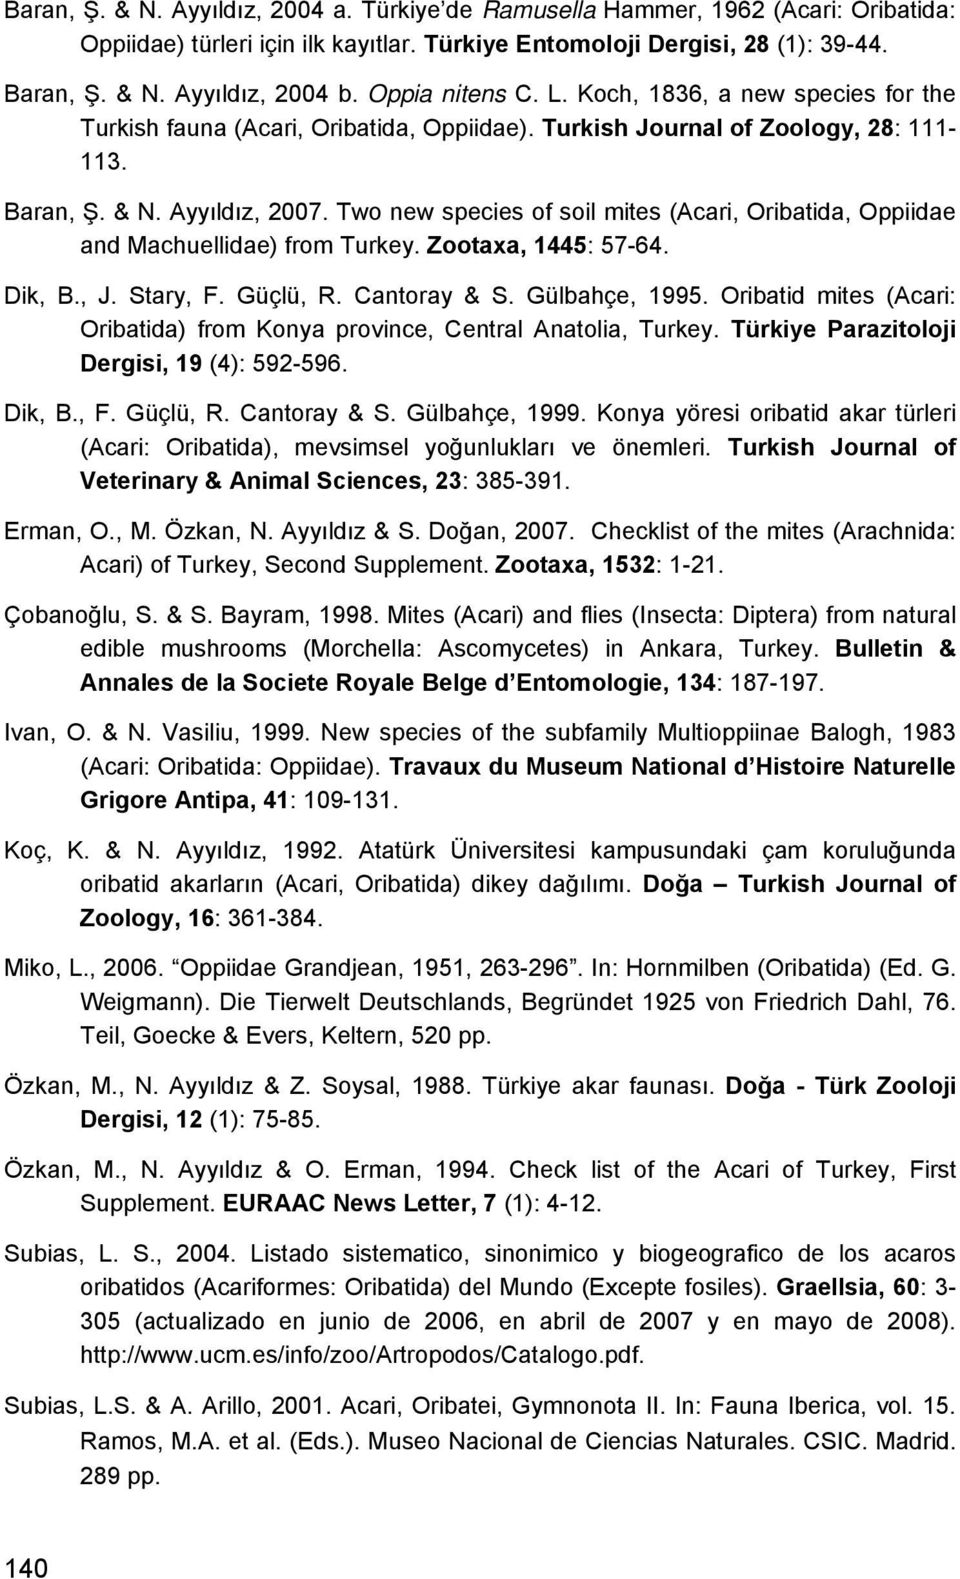 Two new species of soil mites (Acari, Oribatida, Oppiidae and Machuellidae) from Turkey. Zootaxa, 1445: 57-64. Dik, B., J. Stary, F. Güçlü, R. Cantoray & S. Gülbahçe, 1995.